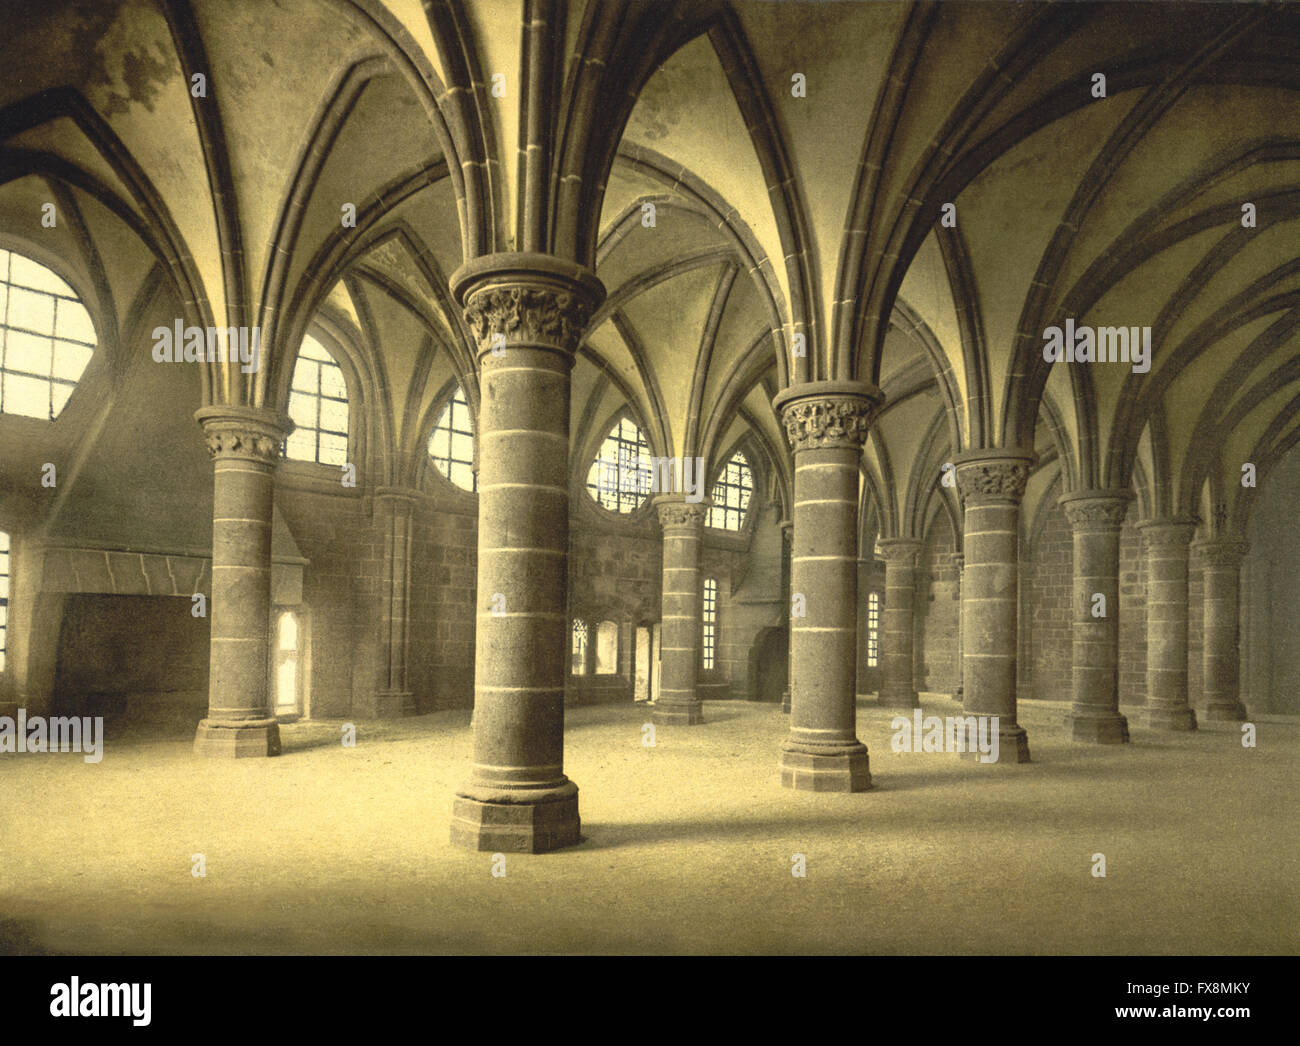 Knights' Hall, Mont St. Michel, France, Photochrome Print, circa 1900 - Stock Image